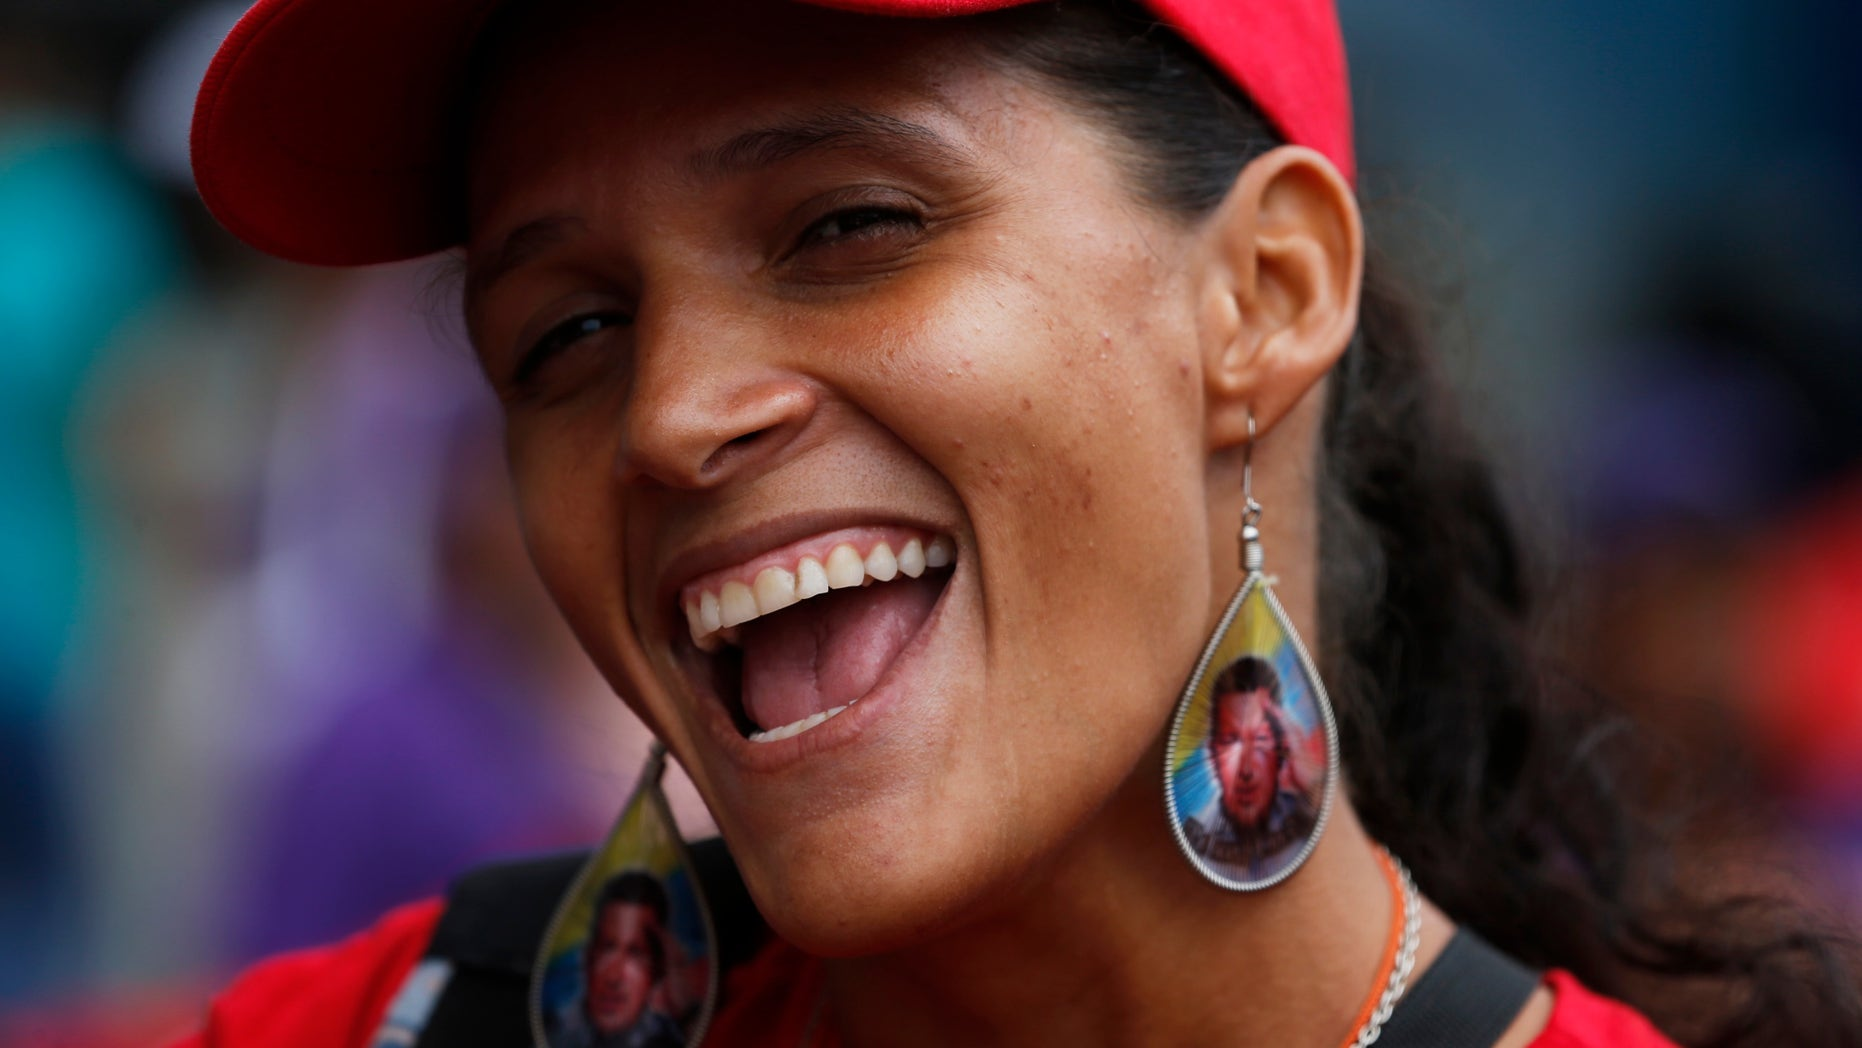 A woman wearing earrings designed with an image of the late President Hugo Chavez, smiles during a pro-government rally in Caracas, Venezuela, Saturday, Feb. 22, 2014. Venezuelans on both sides of the nation's political divide took to the streets on Saturday after nearly two weeks of mass protests that have Venezuelan President Nicolas Maduro scrambling to reassert his leadership. (AP Photo/Fernando Llano)